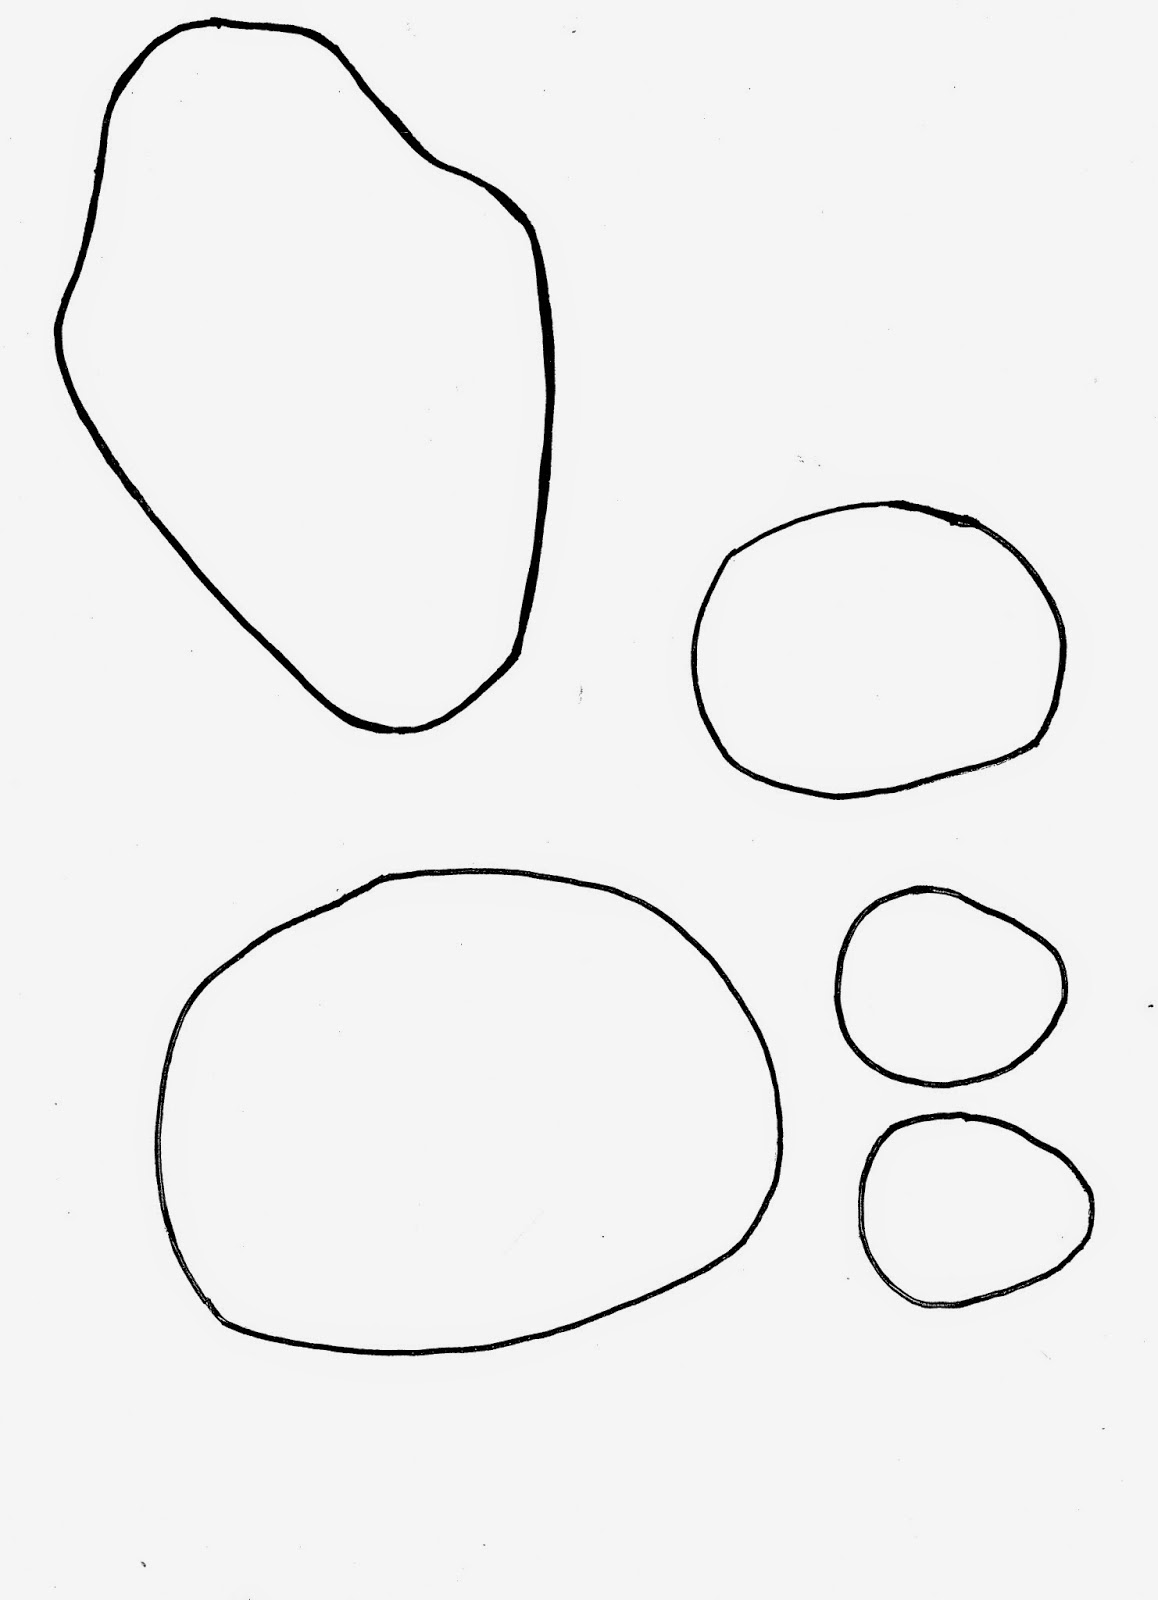 olaf body parts coloring pages - photo#15